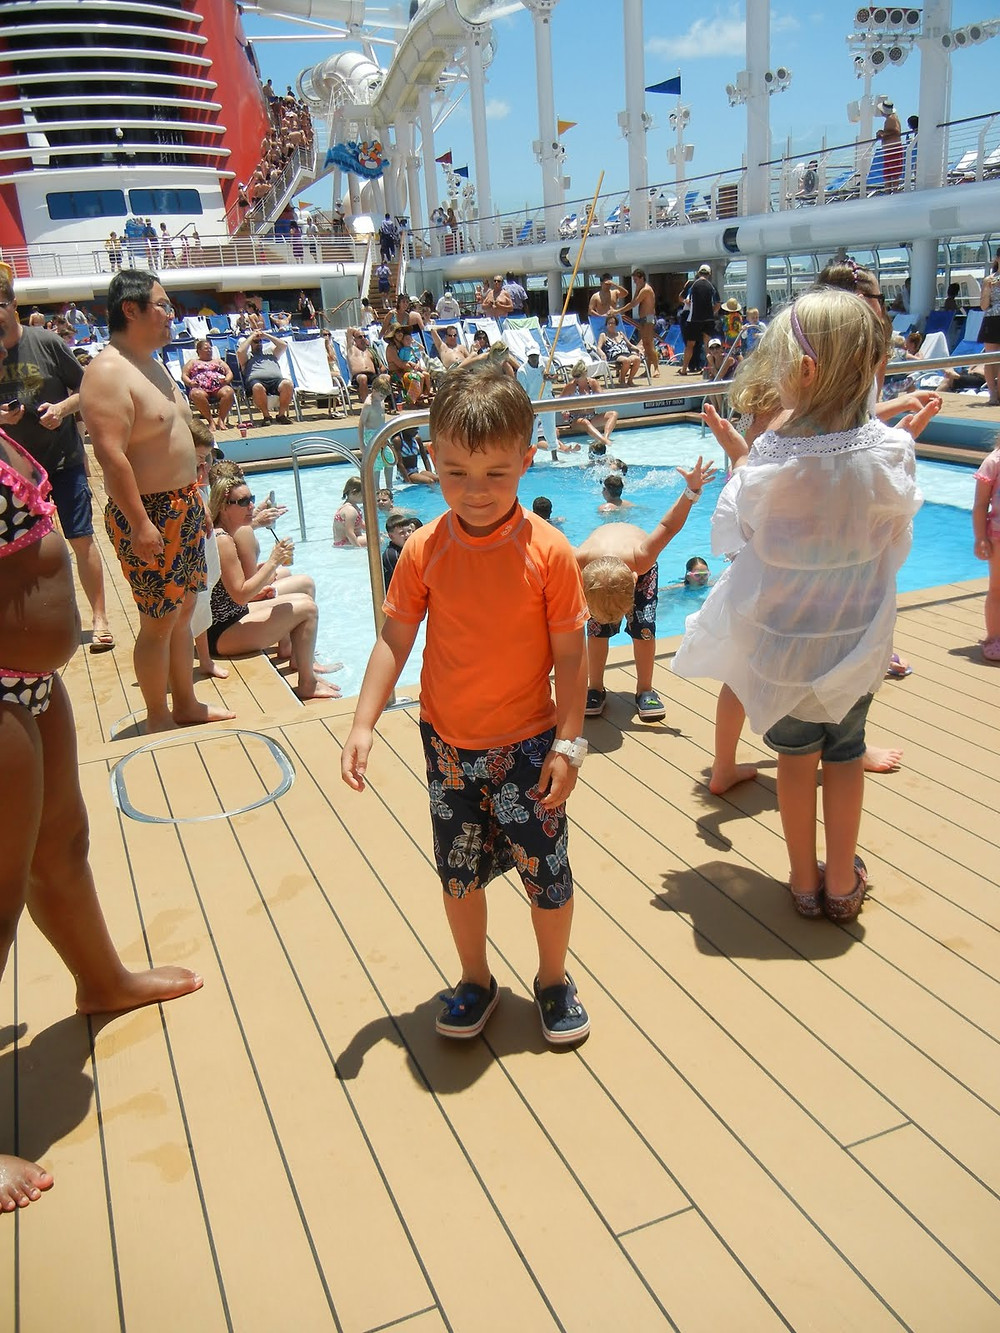 B at the pool deck dance party